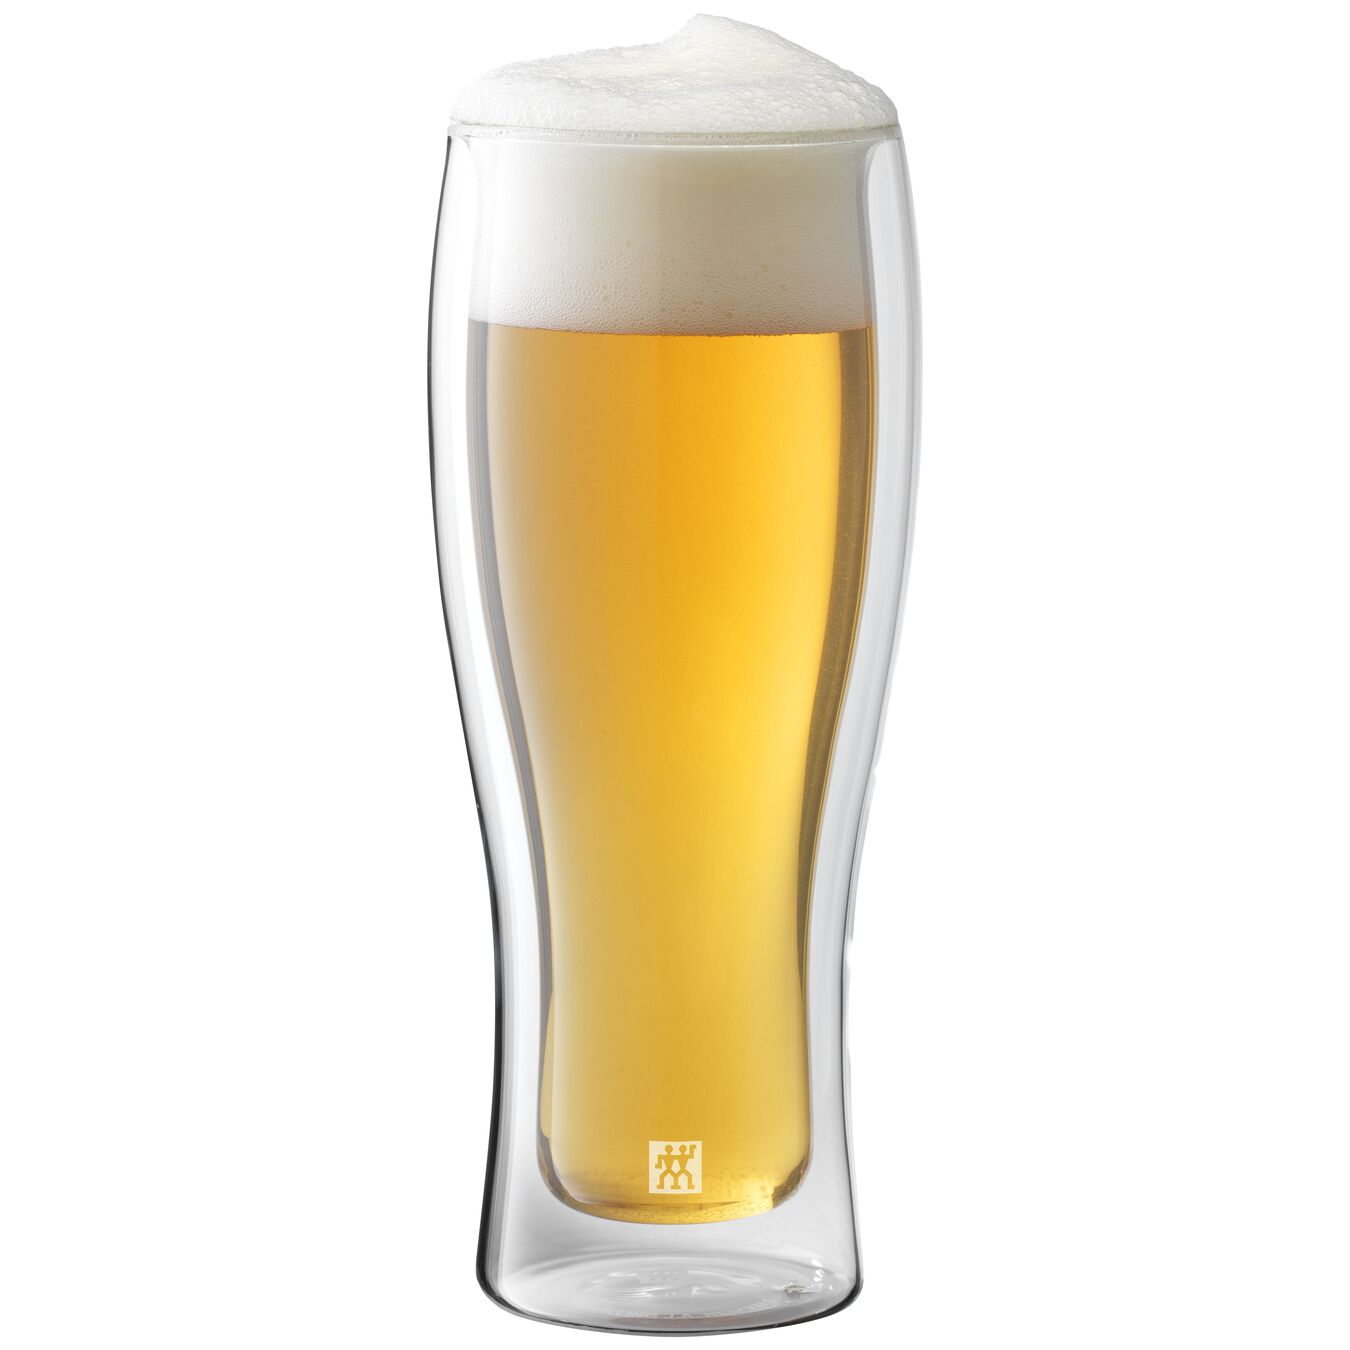 2 Piece Beer glass set,,large 2